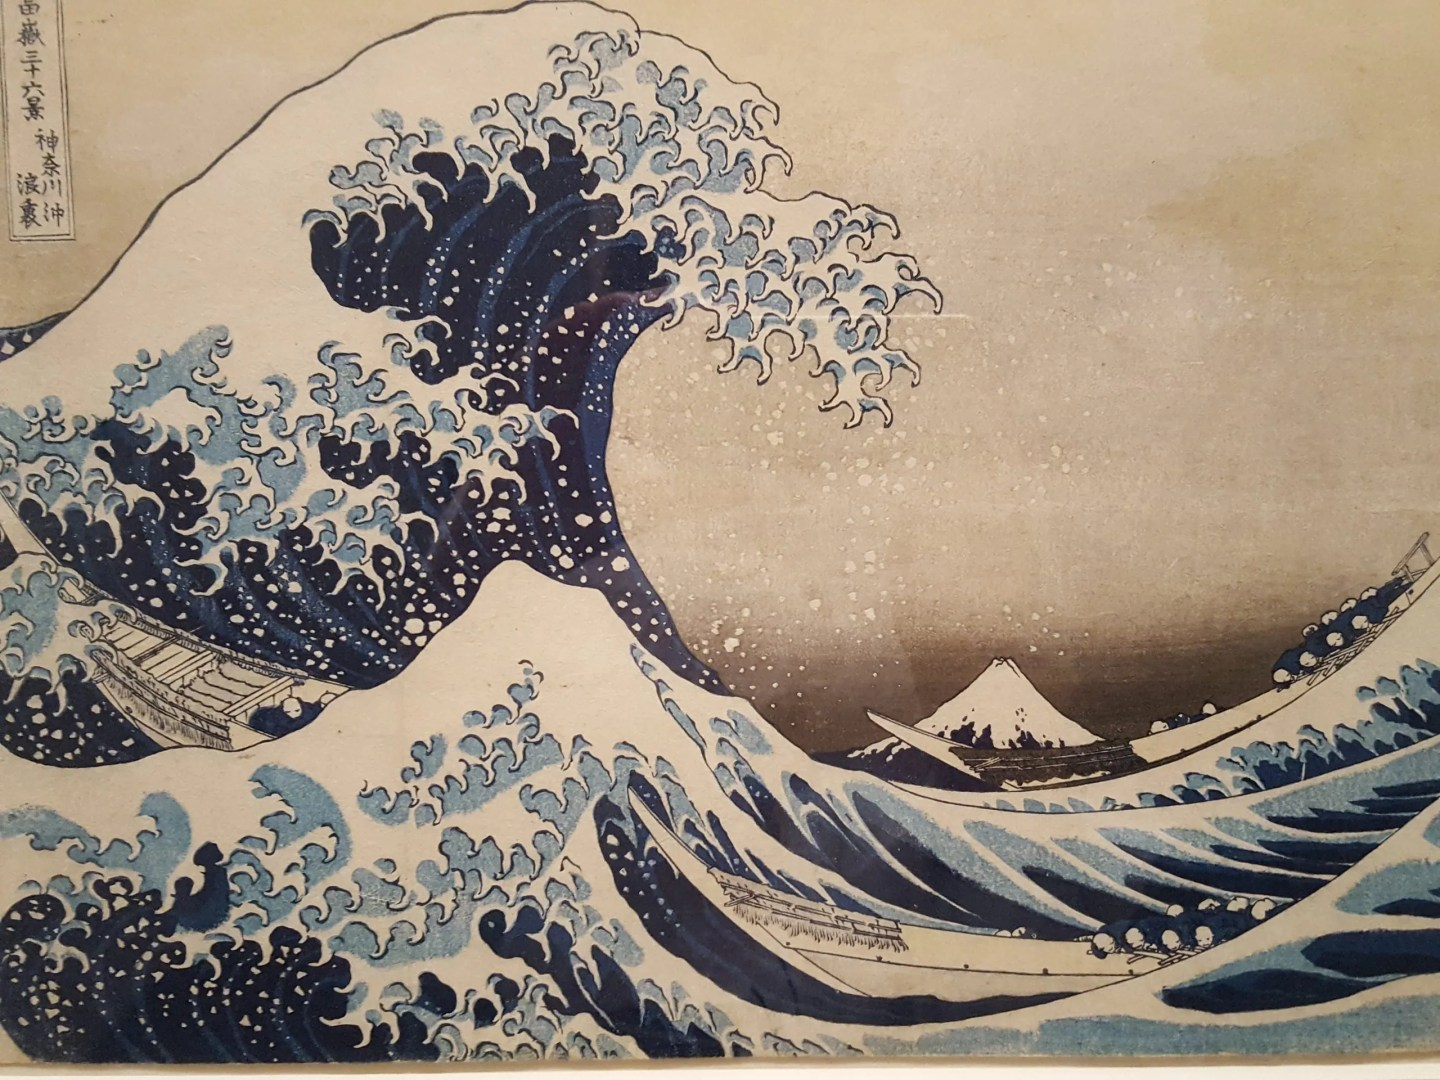 HOKUSAI BEYOND THE GREAT WAVE at the British Museum